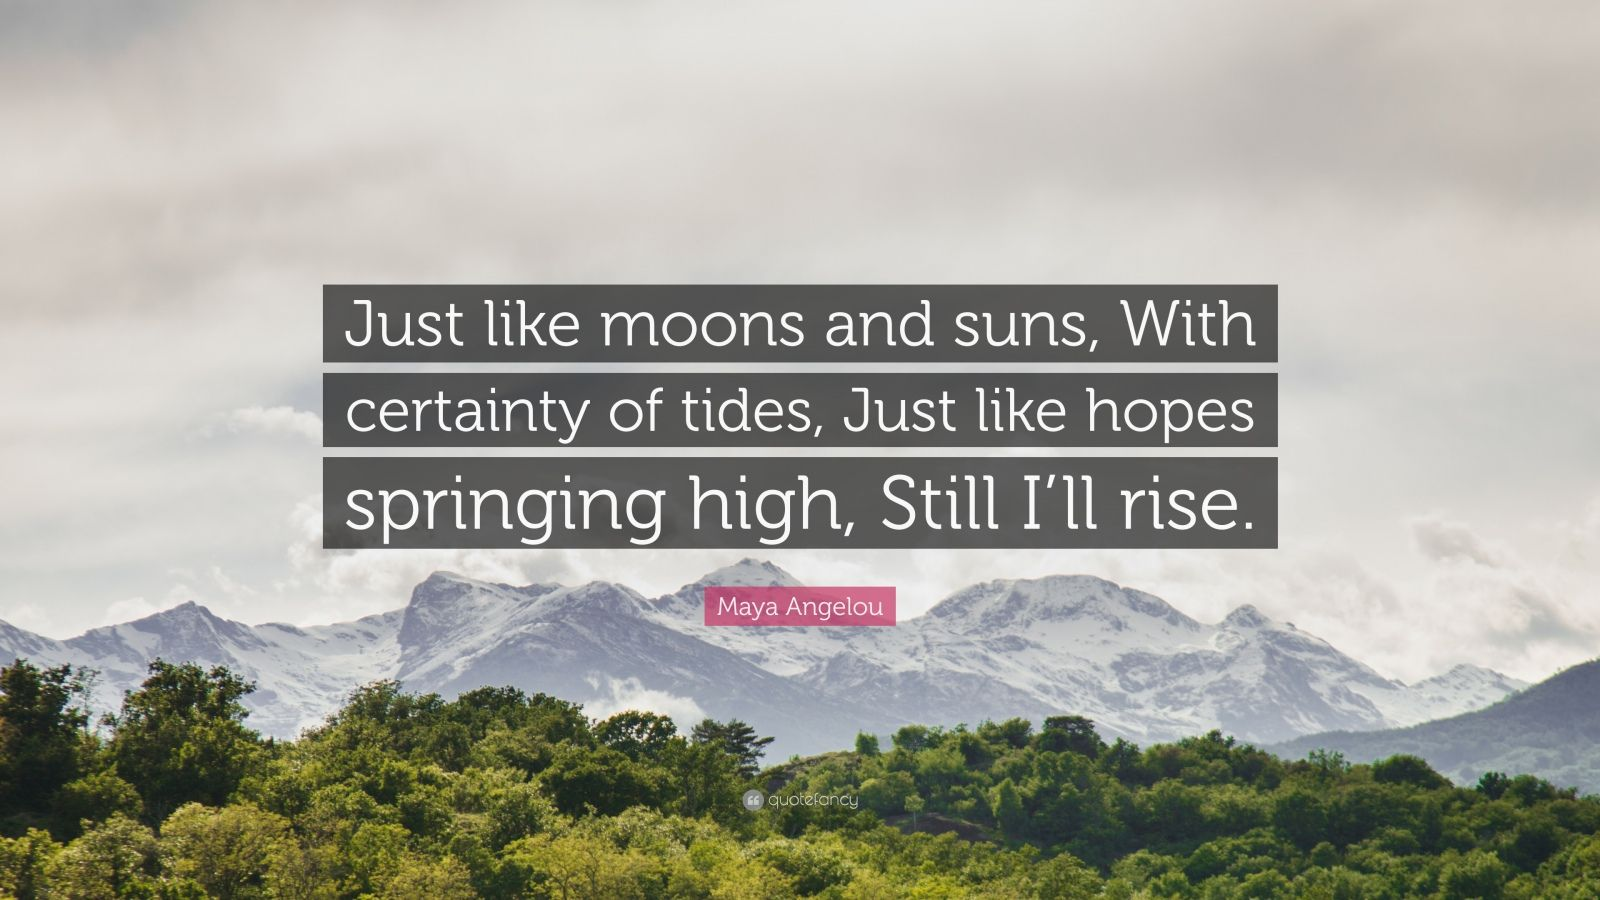 """Maya Angelou Quote: """"Just like moons and suns, With certainty of tides, Just like hopes springing high, Still I'll rise."""""""